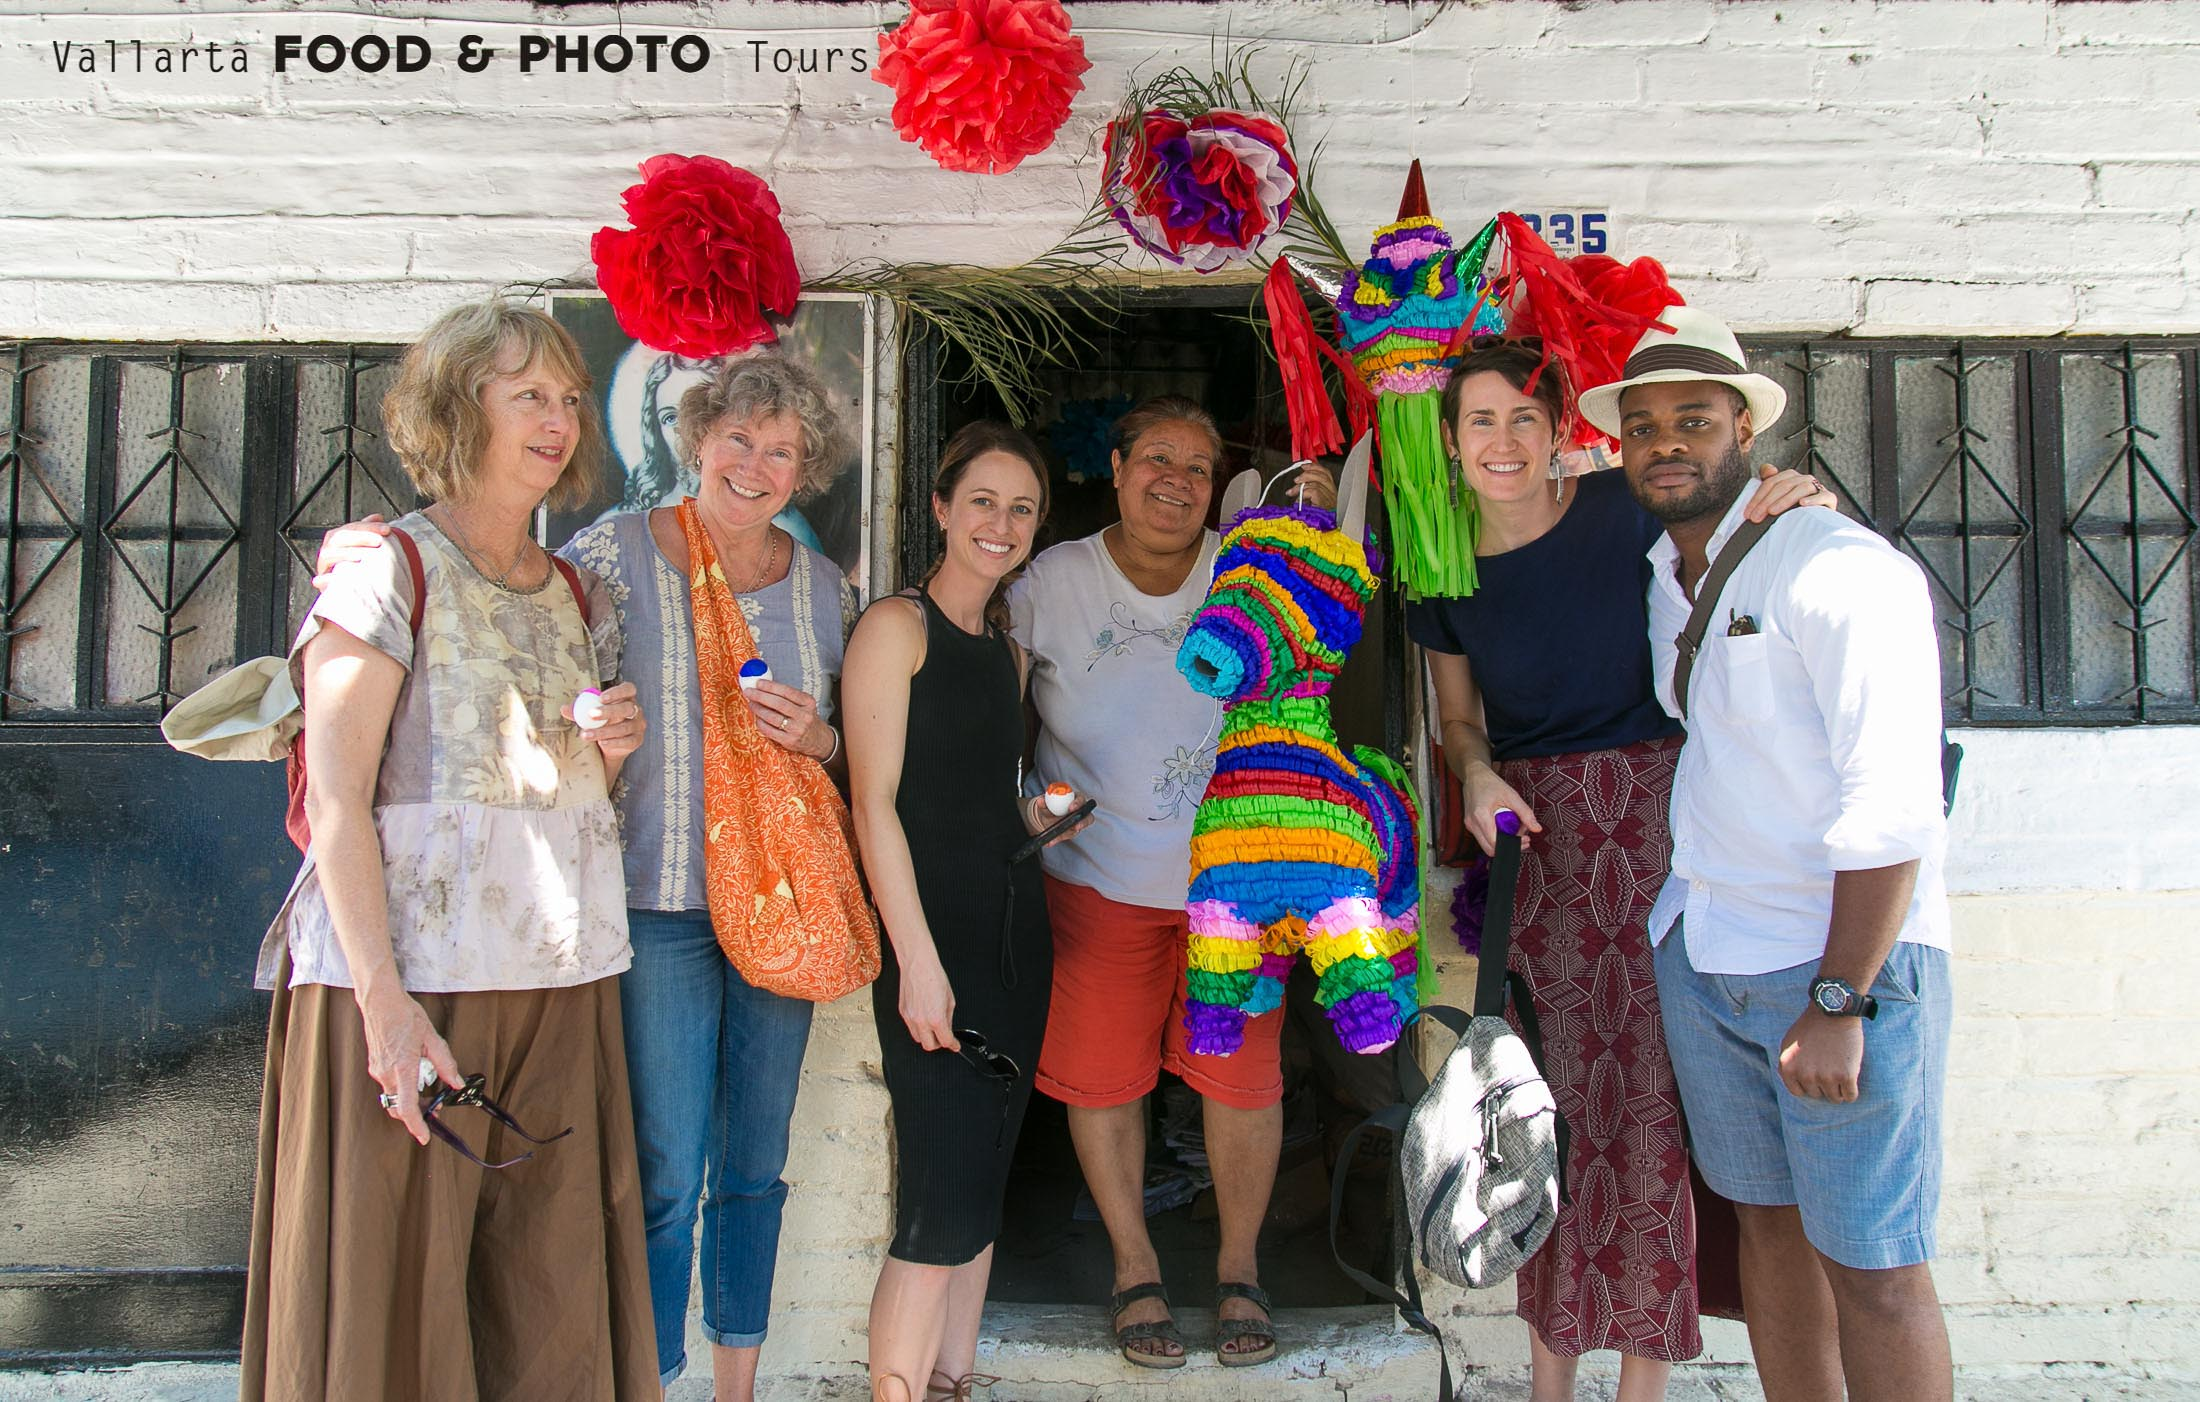 Two American families posing at a piñata shop while taking a Food Tour by Puerto Vallarta Food Tours and Photo Tours, created by Star aka Estrellita Velasco